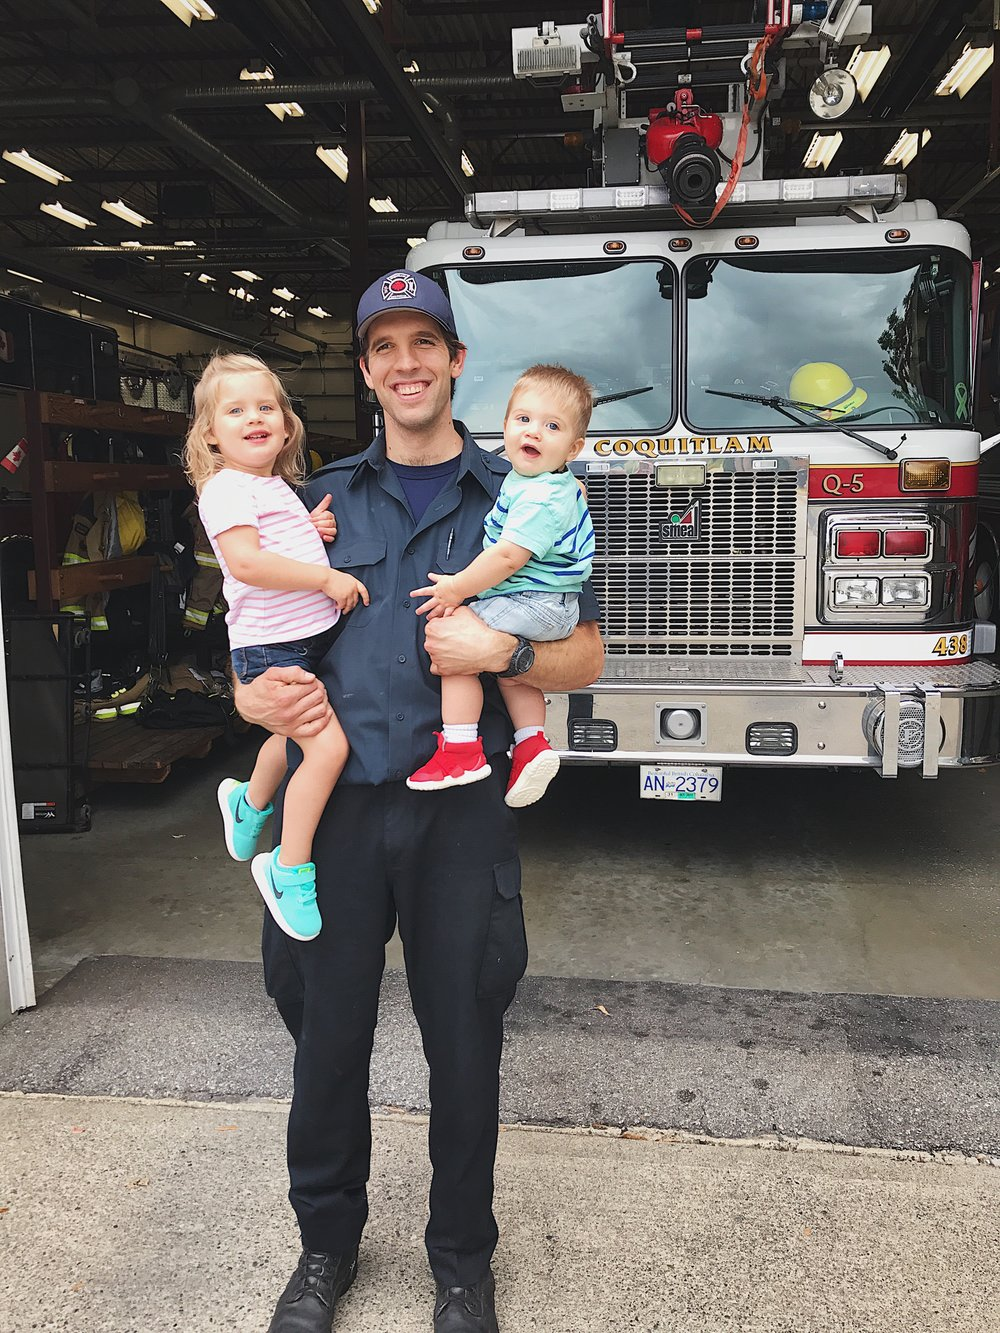 For the first time, I was well enough to take the kids to visit Zach at his fire hall!